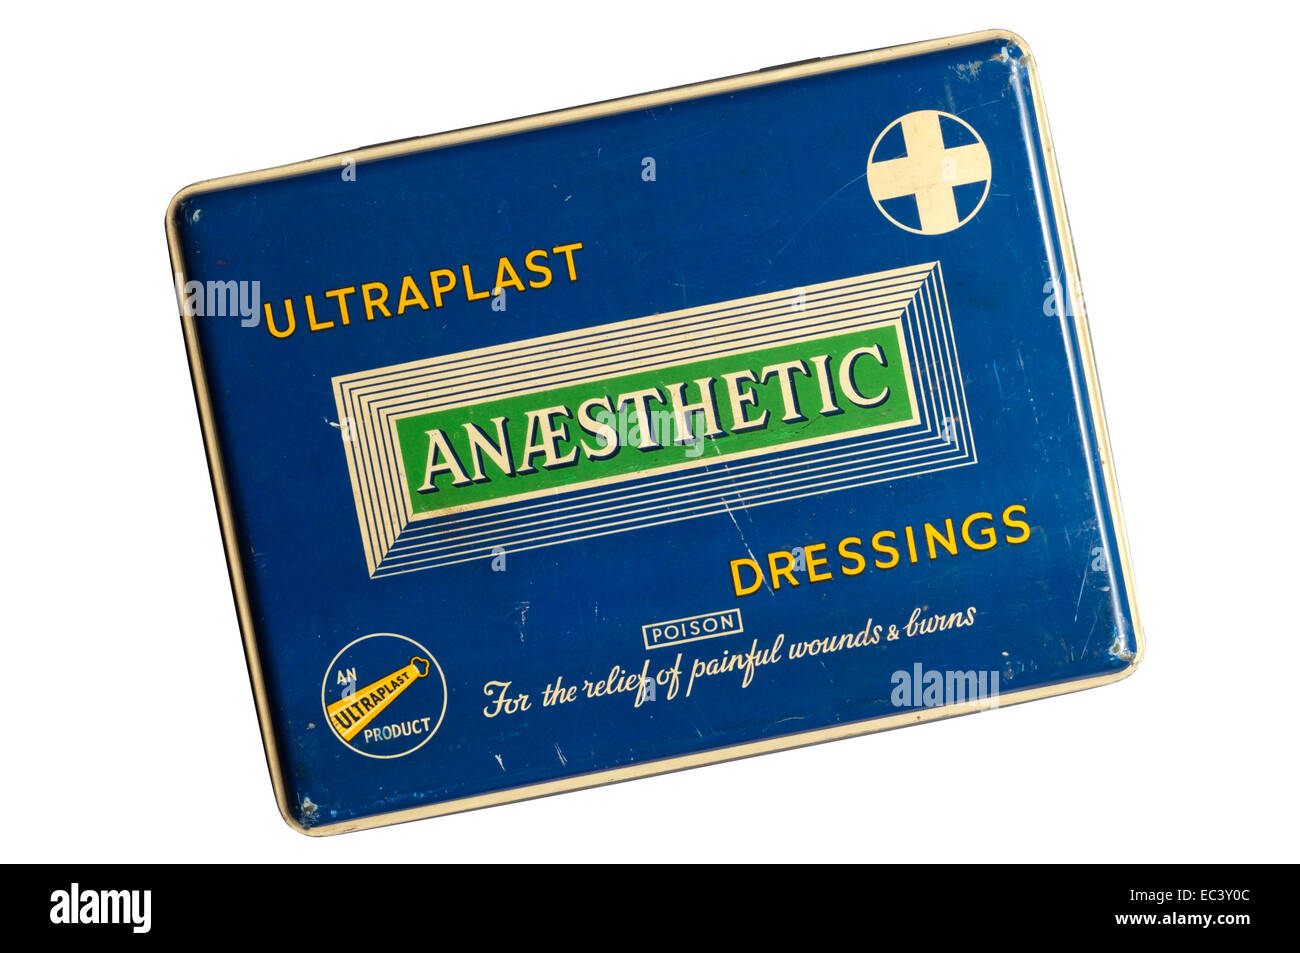 An old tin of Ultraplast Anaesthetic Dressings for the relief of painful wounds and burns. - Stock Image